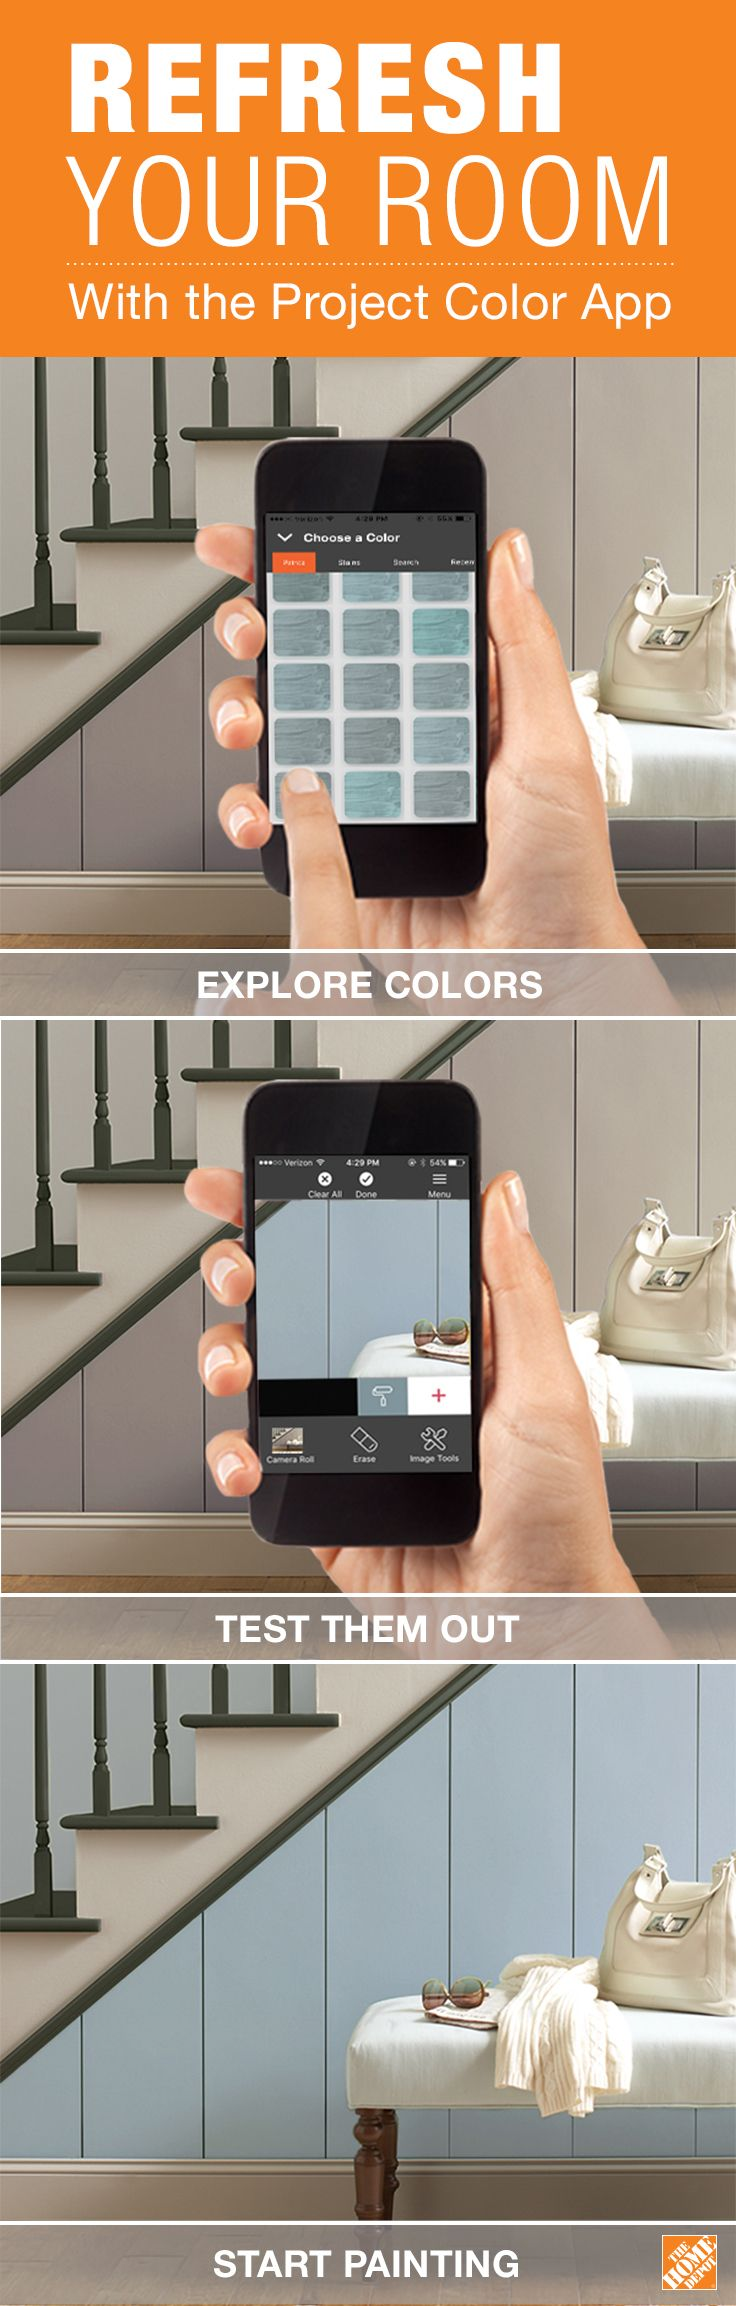 Awesome Room Painting App for iPhone